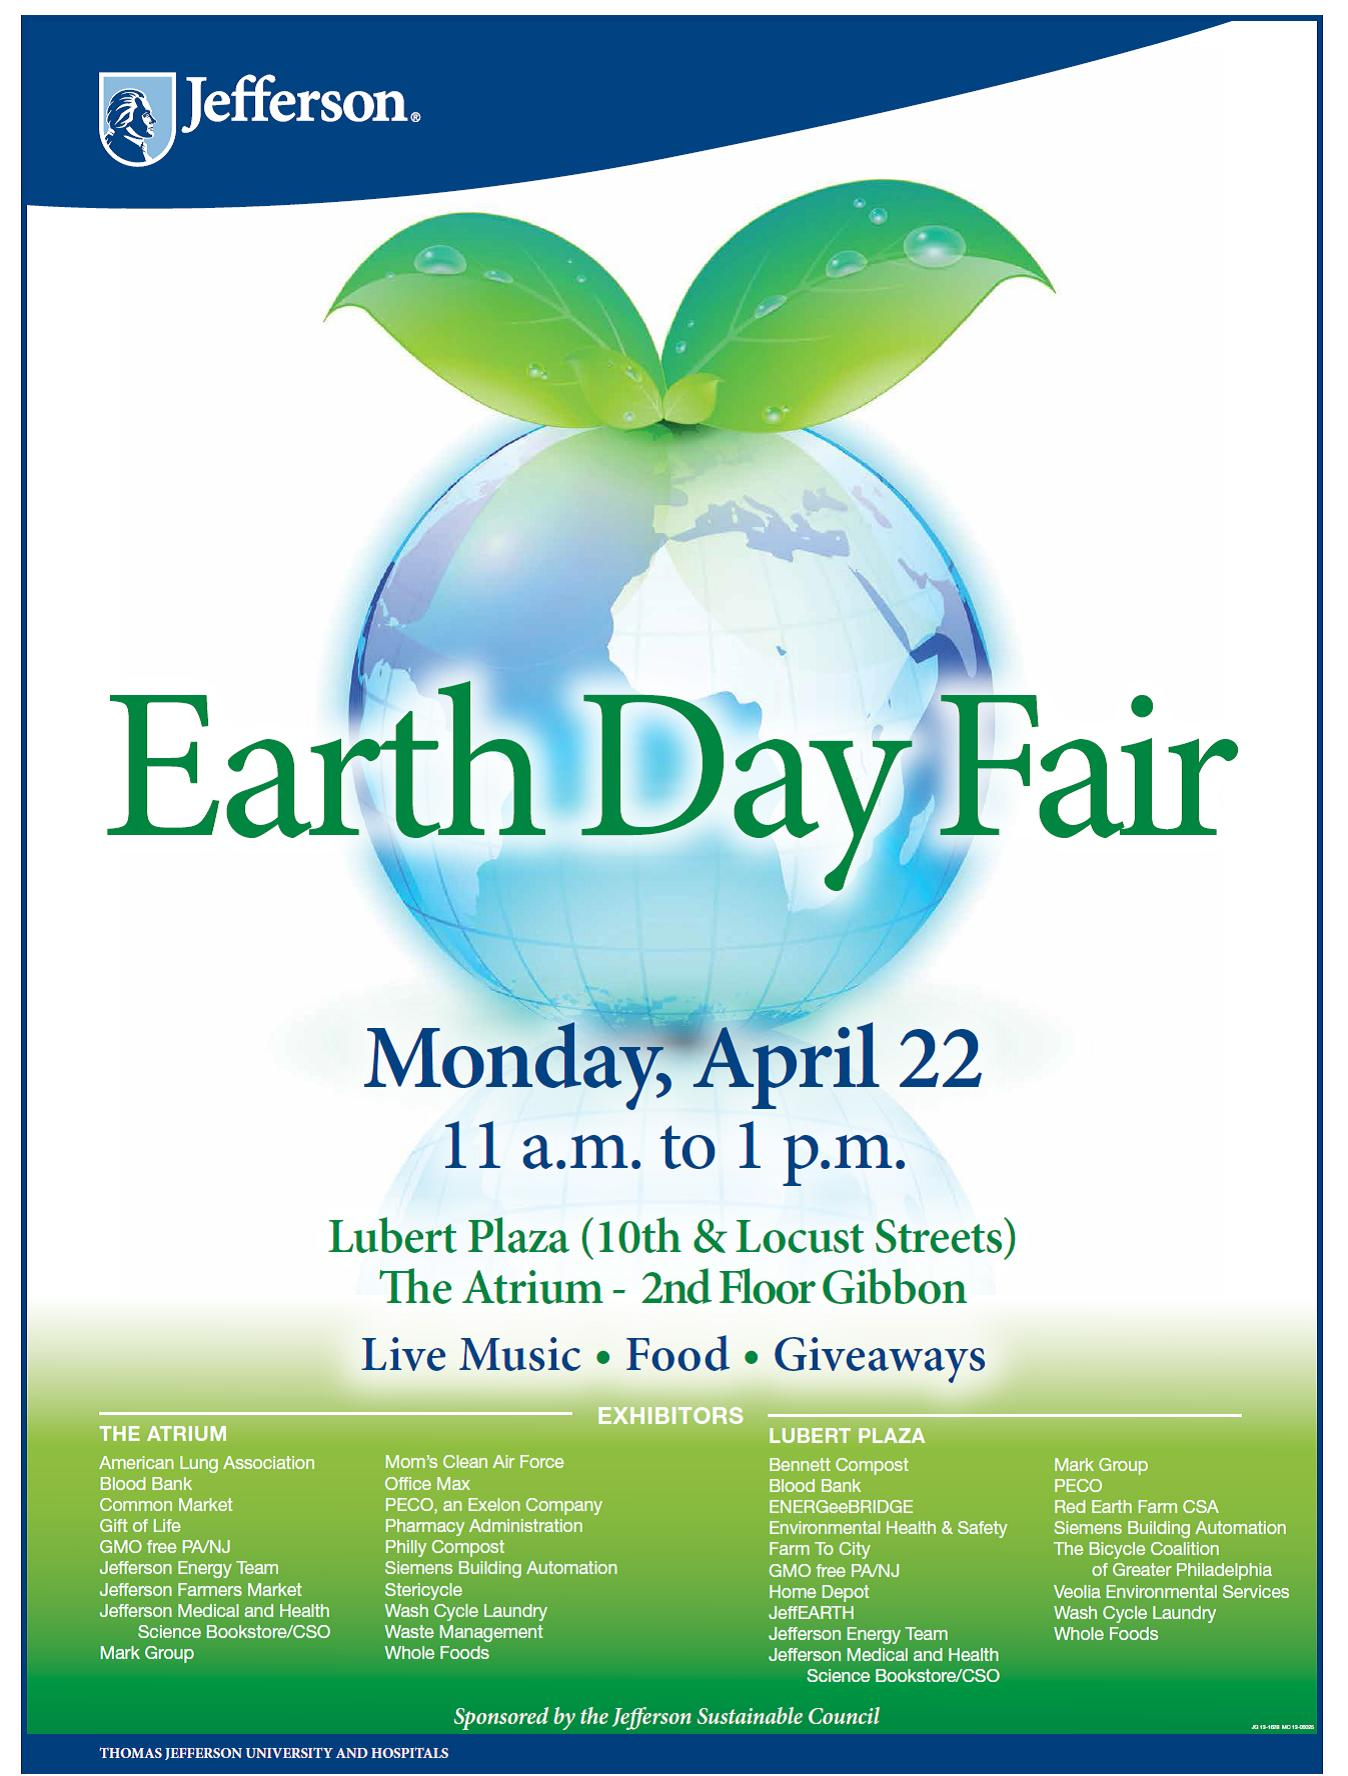 Thomas Jefferson Univeristy and Hospital Earth Day Event 2013 ...